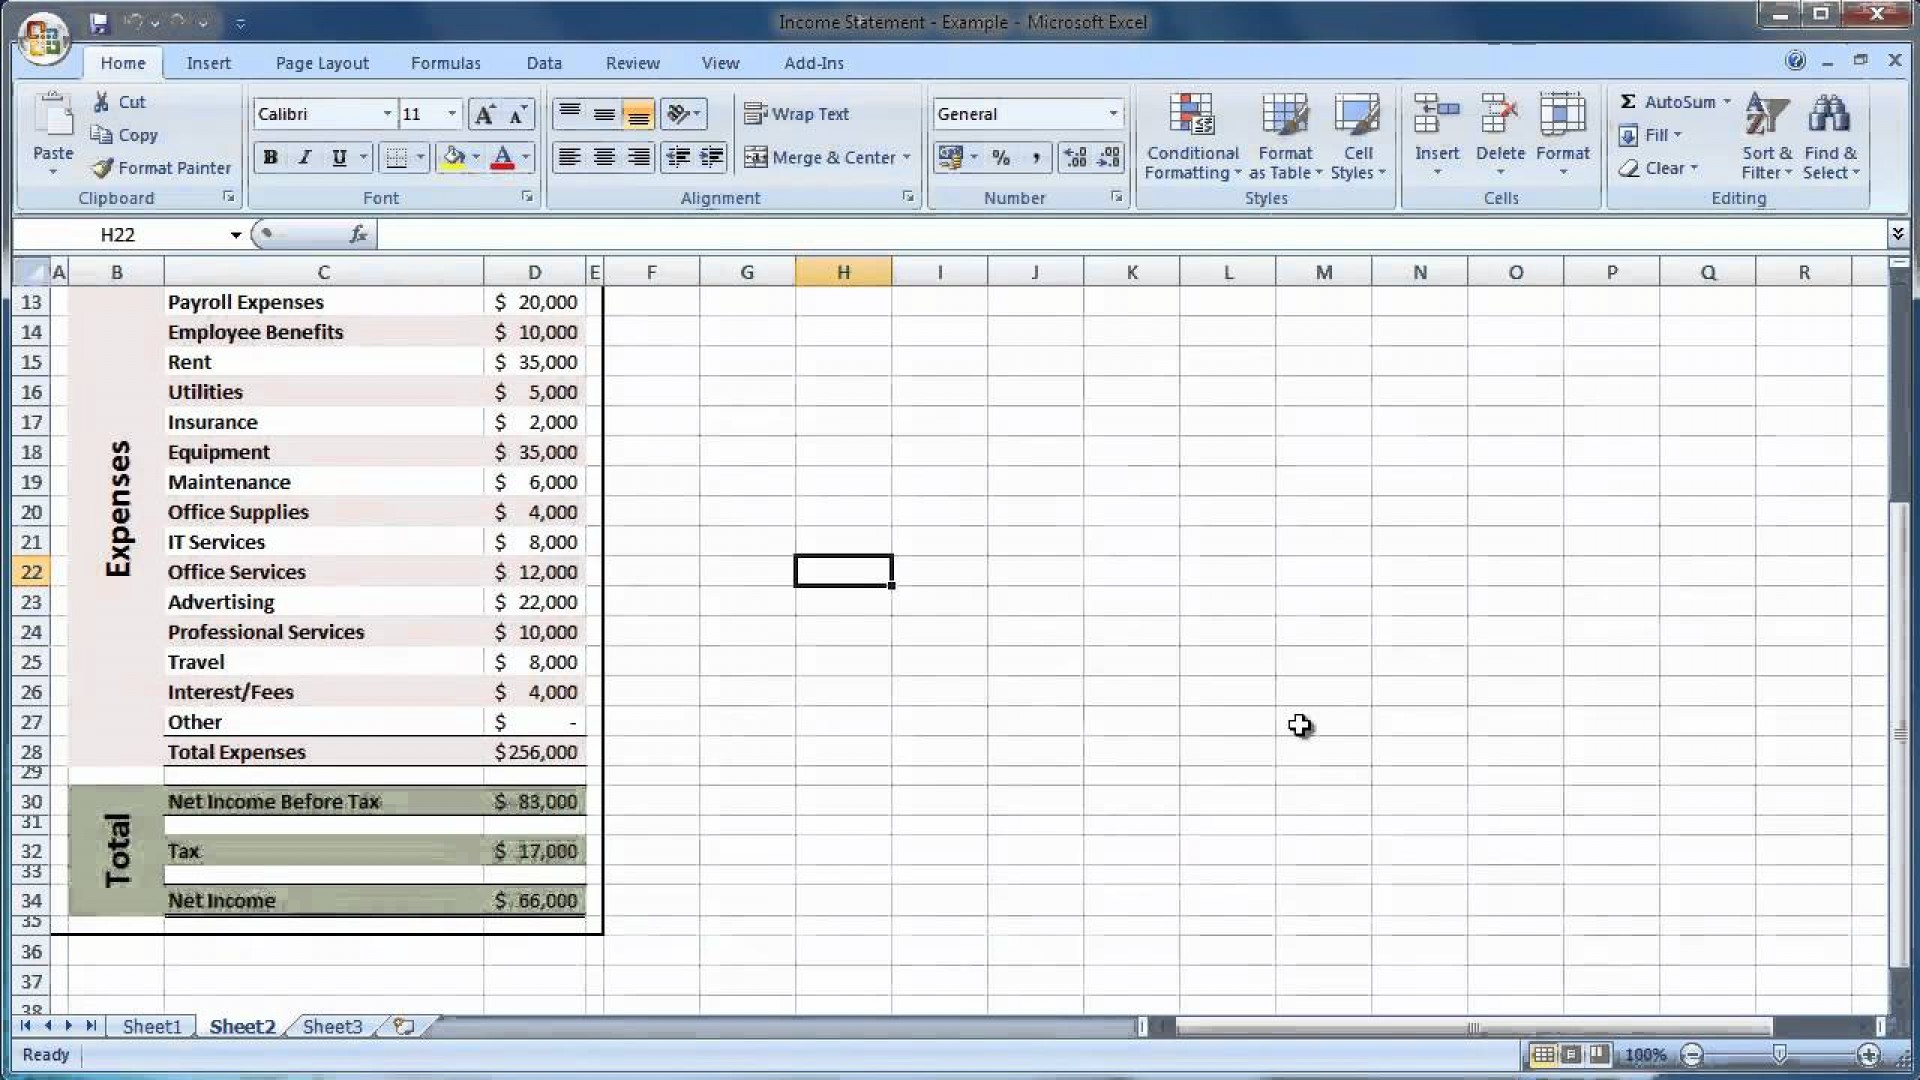 Financial Statement Spreadsheet Within 028 Template Ideas Excel Financial Statement Expenses And Income